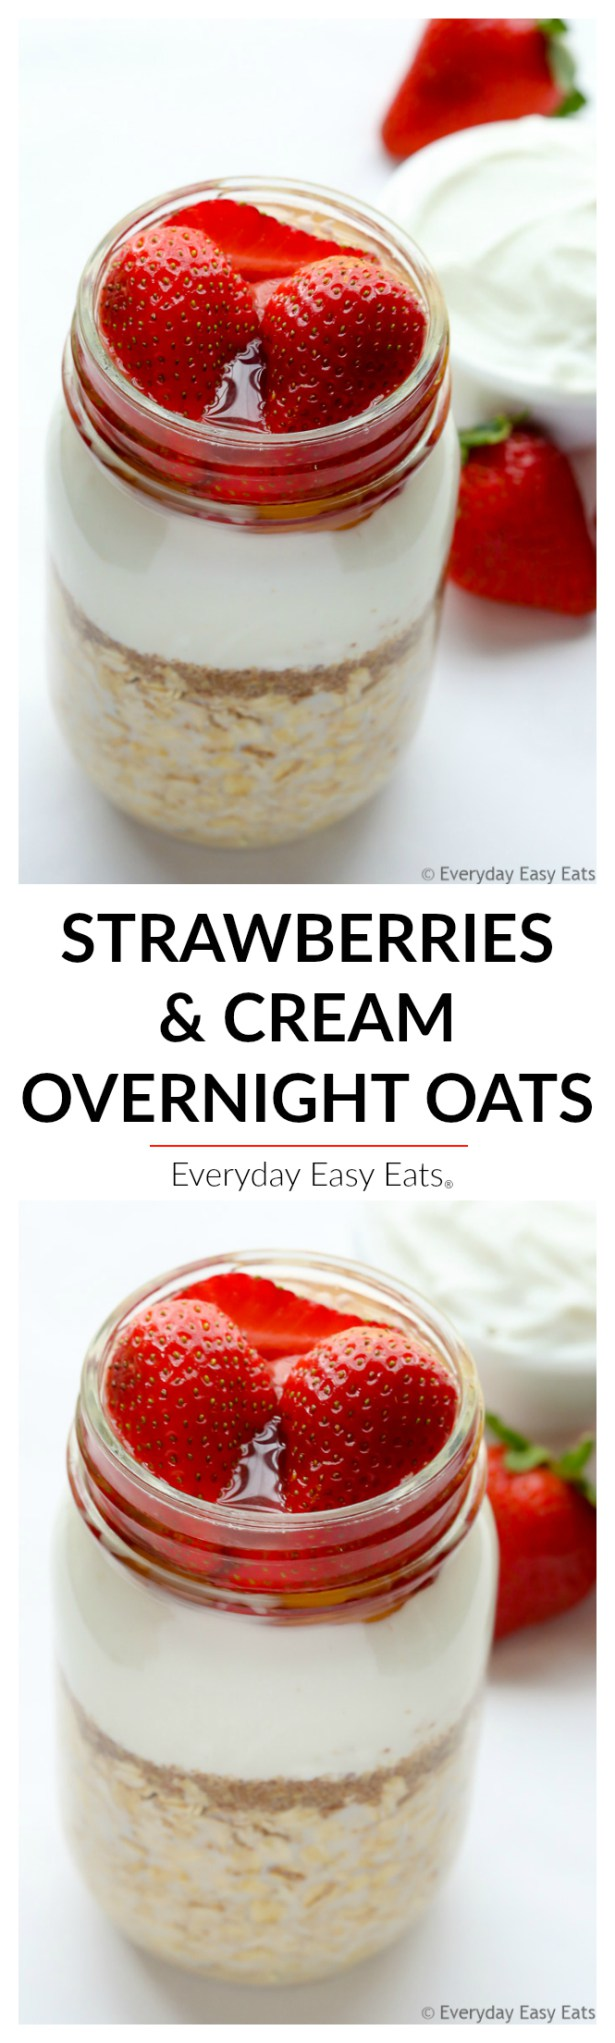 Save time in the morning with this Strawberries & Cream Overnight Oats recipe. Only 6 ingredients and 5 minutes of prep time are needed!